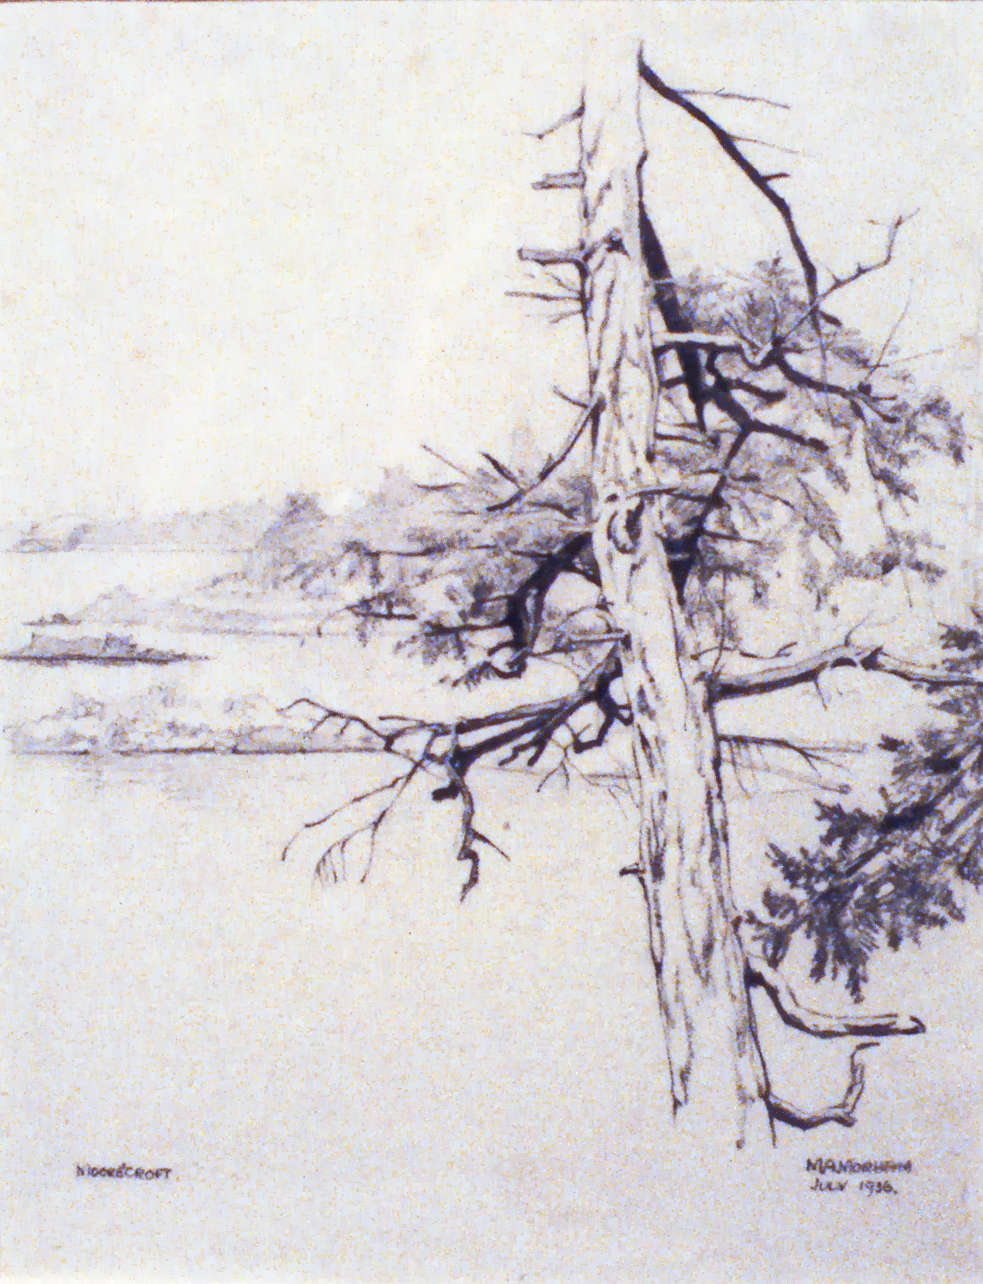 Moorecroft ,1936, Marion Morham Grigsby,pencil on paper, 27.9 x 43.5 cm, 1980.04.06. Anonymous gift.